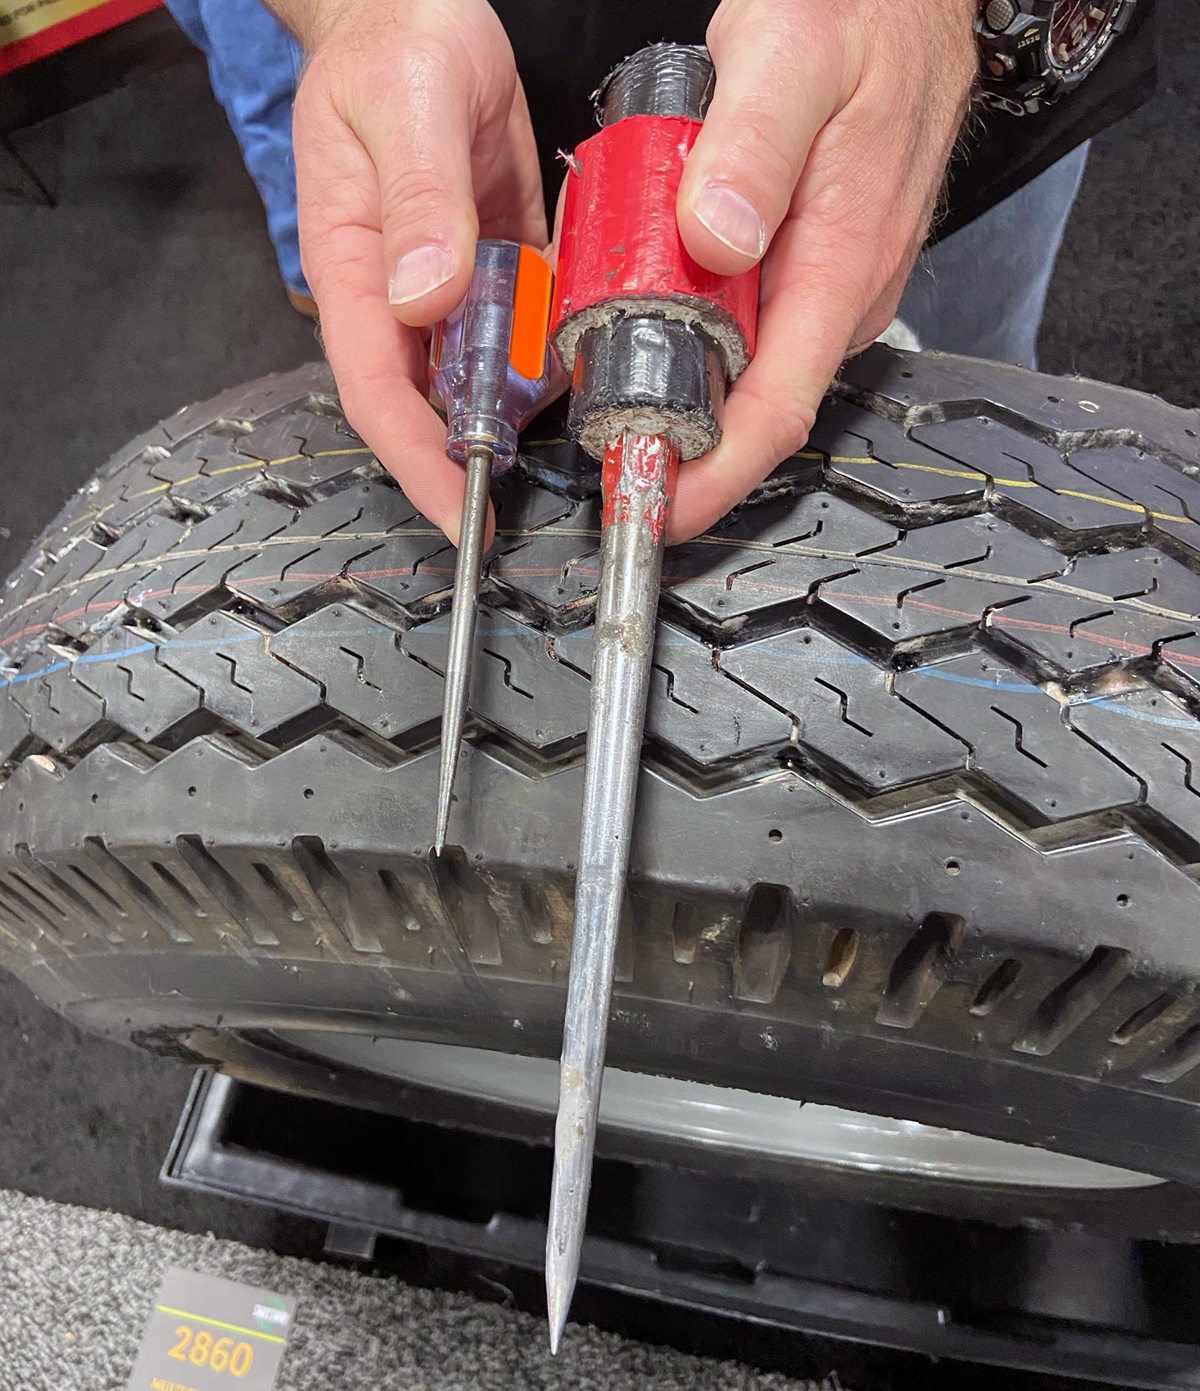 Spikes for demonstrating Flat Out tire sealant (Photo © Russ Chastain)